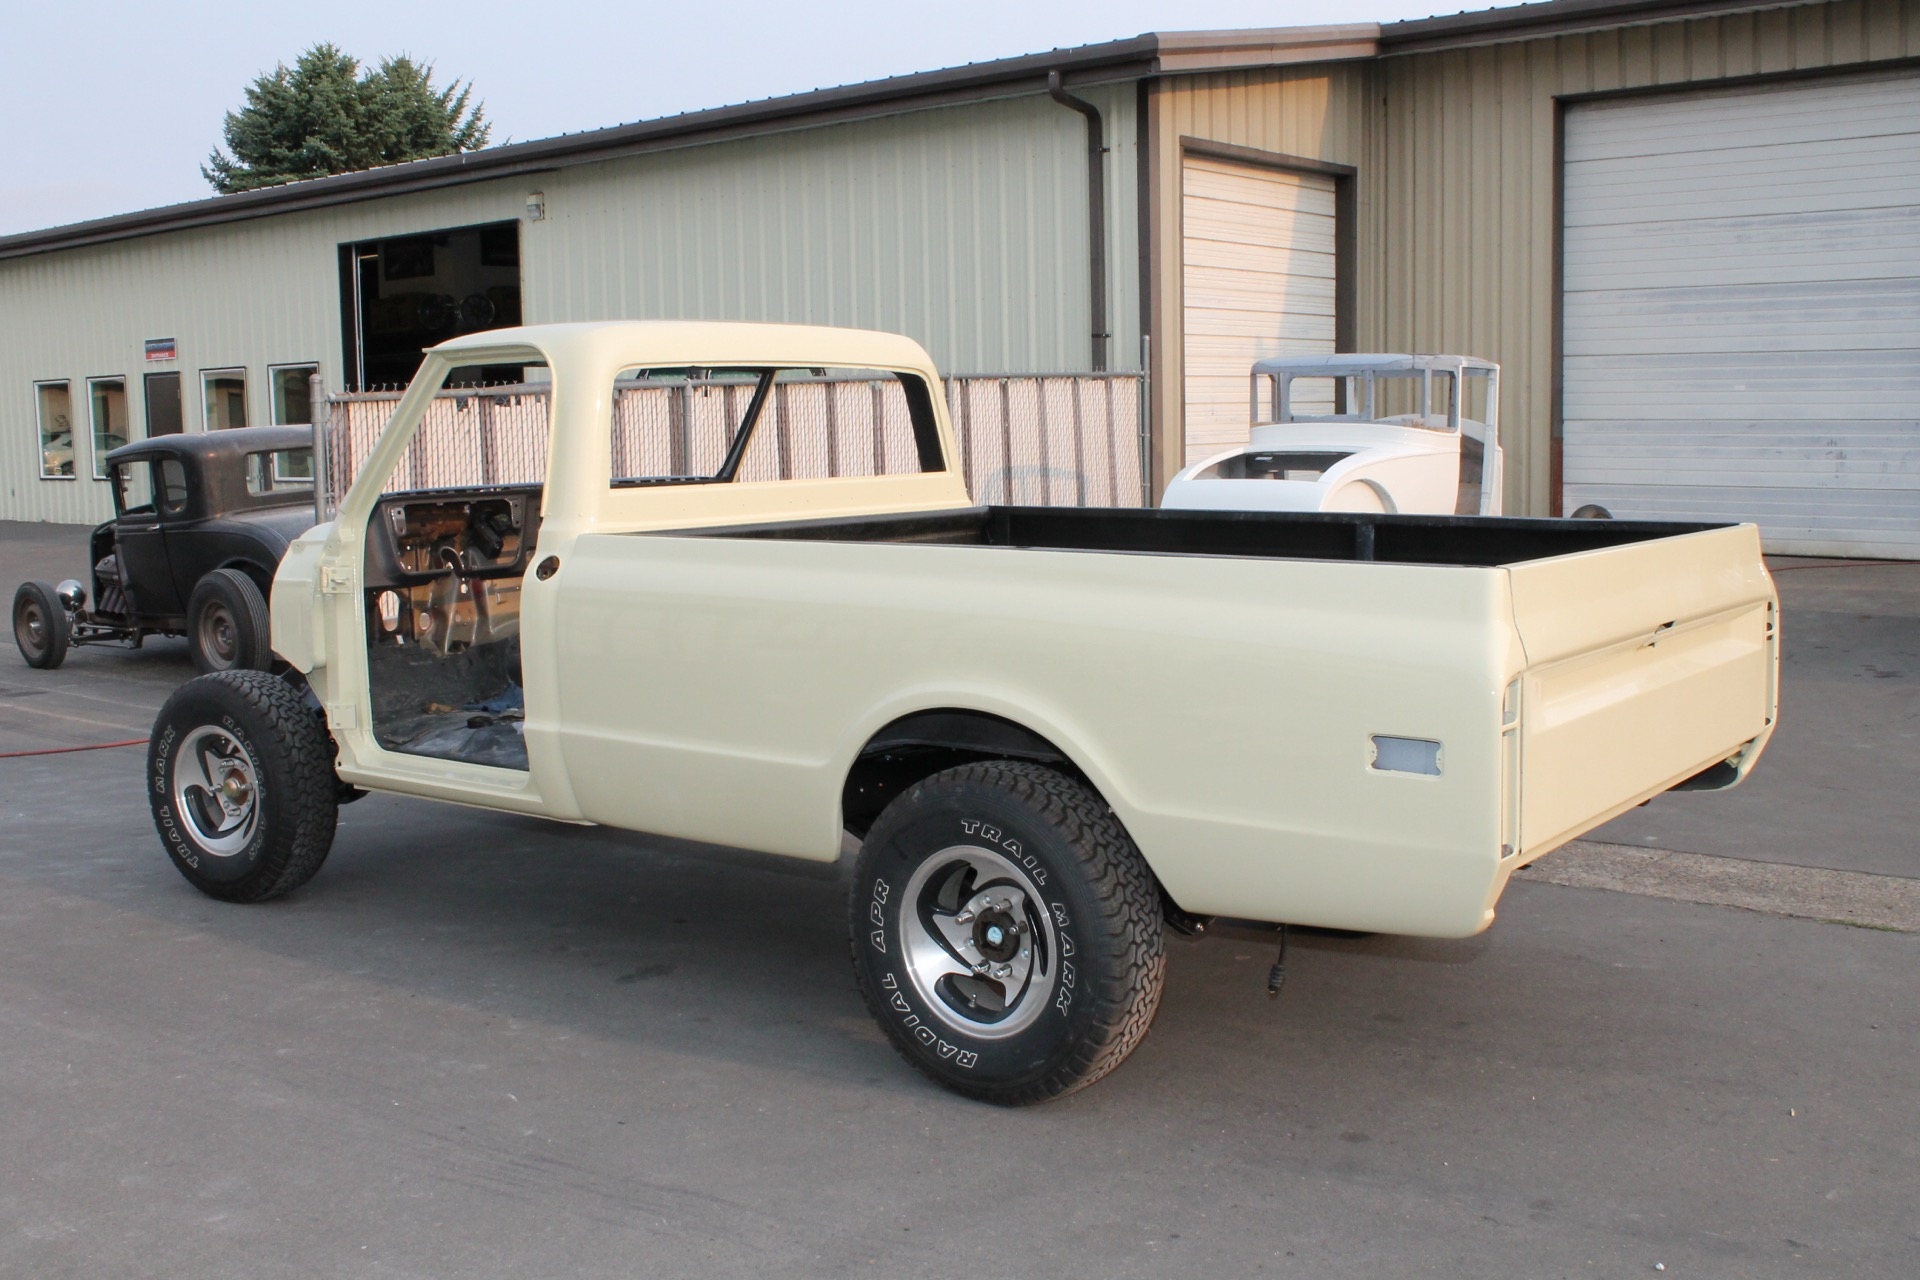 1968 Chevy Truck Metalworks Classics Auto Restoration Speed Shop Pickup Chassis